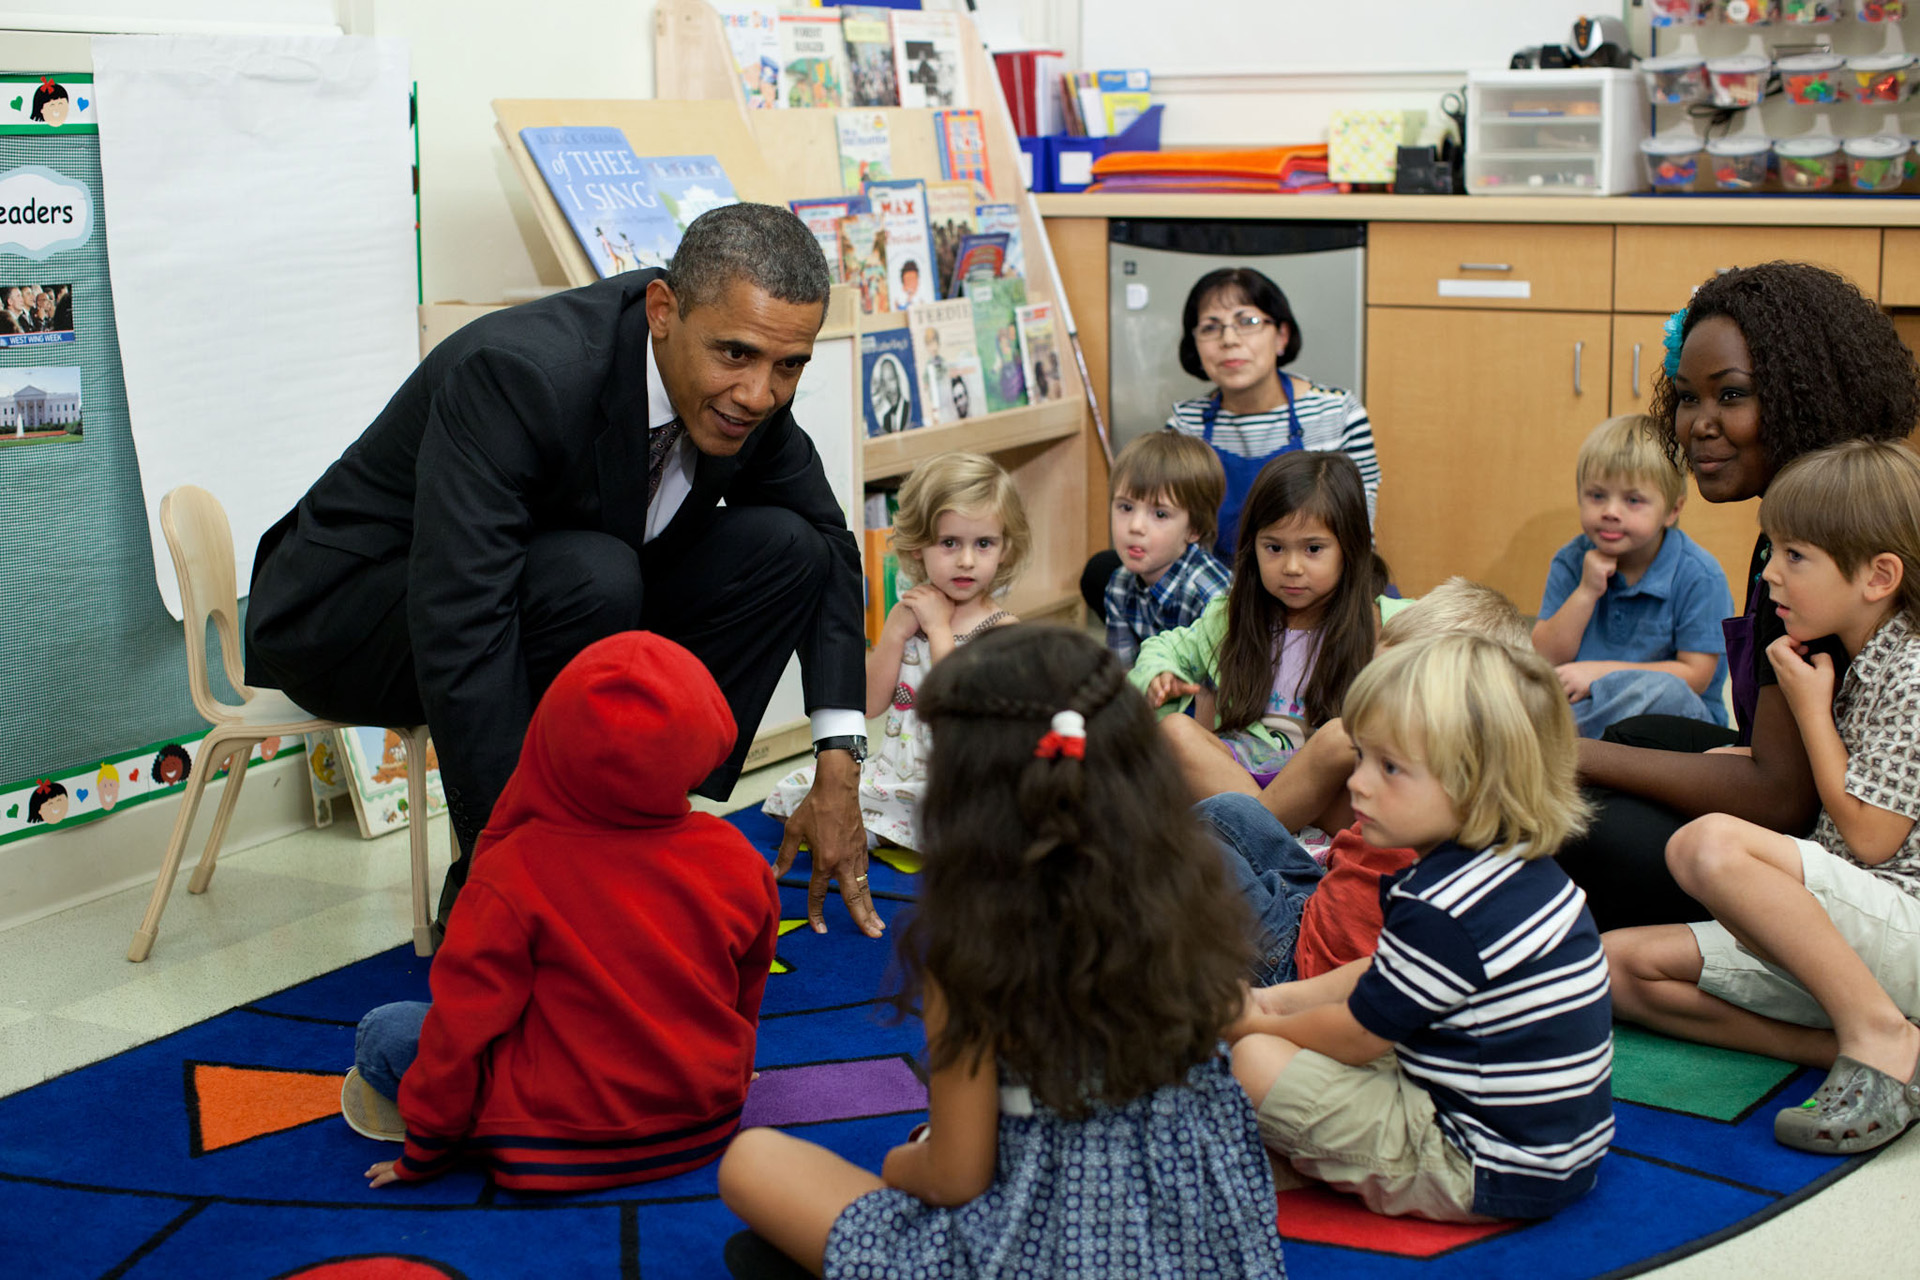 President Barack Obama at the Lab School in Mesquite, Texas